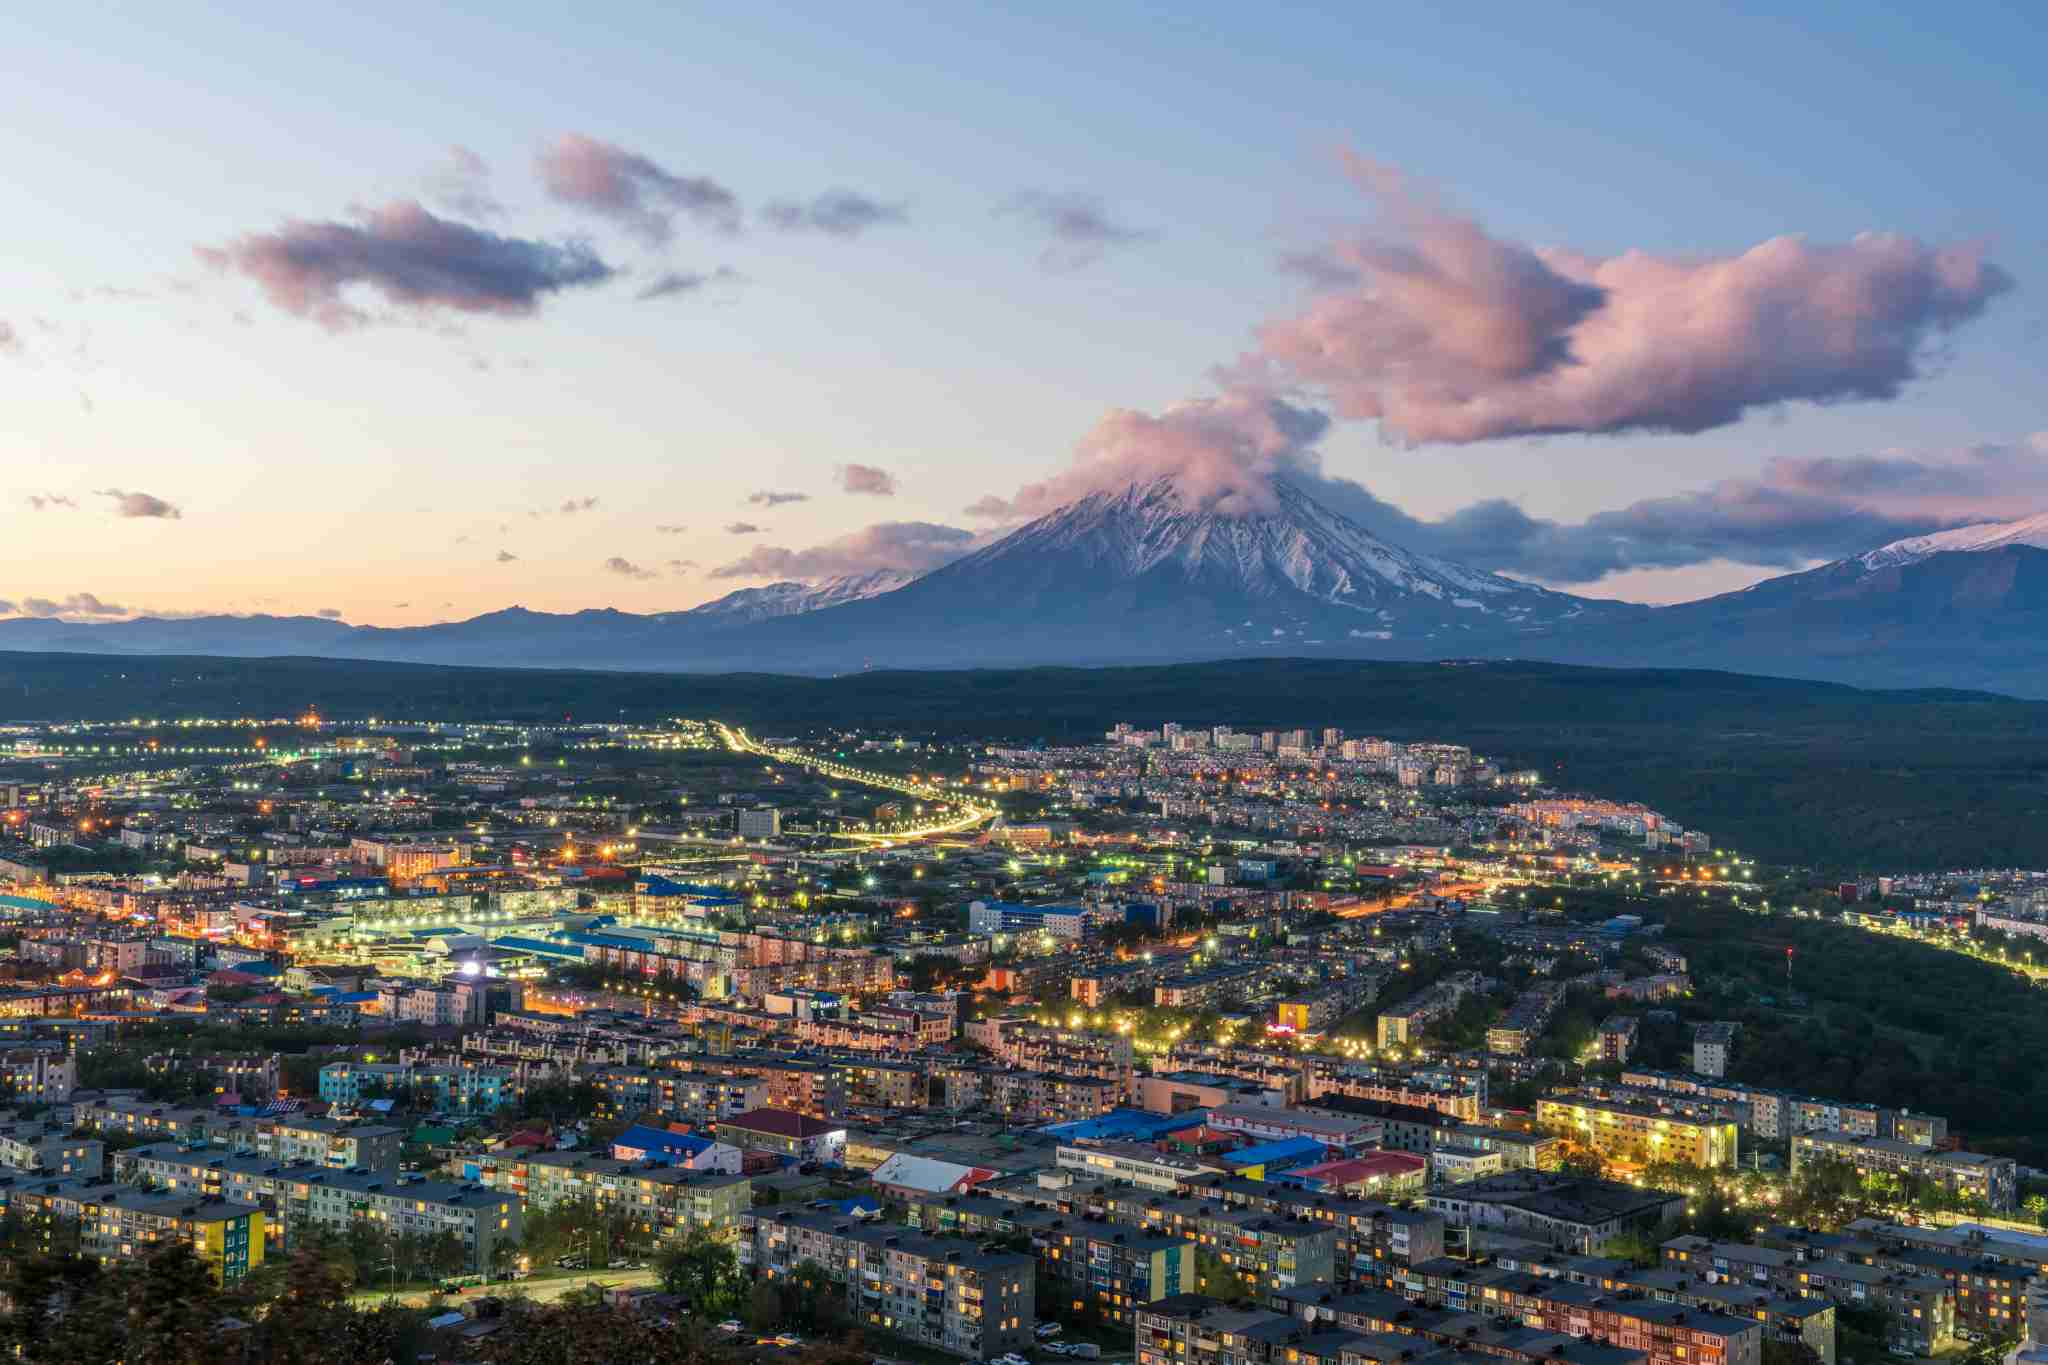 The Petropavlovsk-Kamchatsky skyline. (Image by www.tonnaja.com/Getty Images)